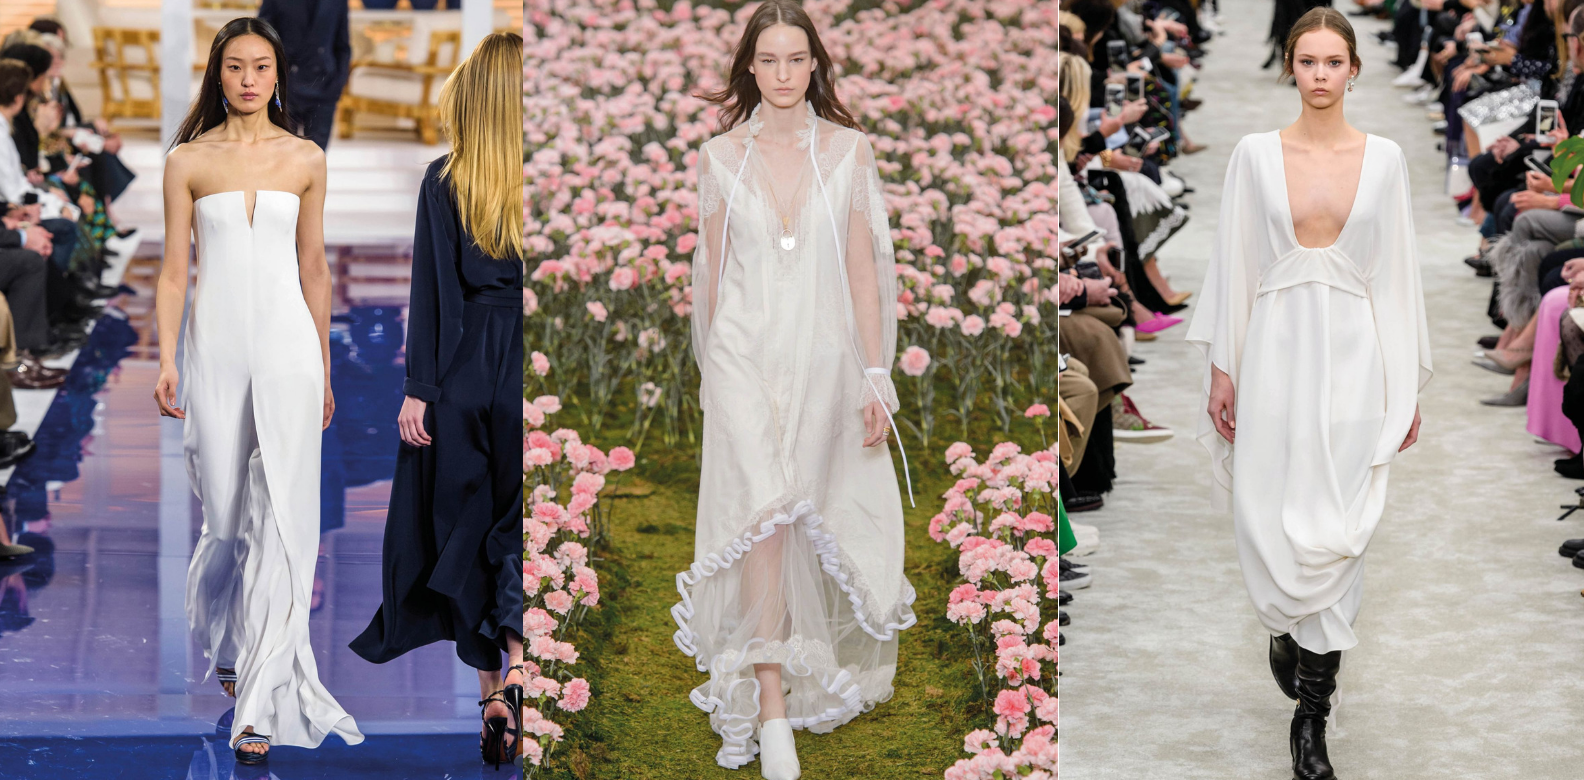 10 Wedding Dresses To Take You From the Ceremony To The Dance Floor